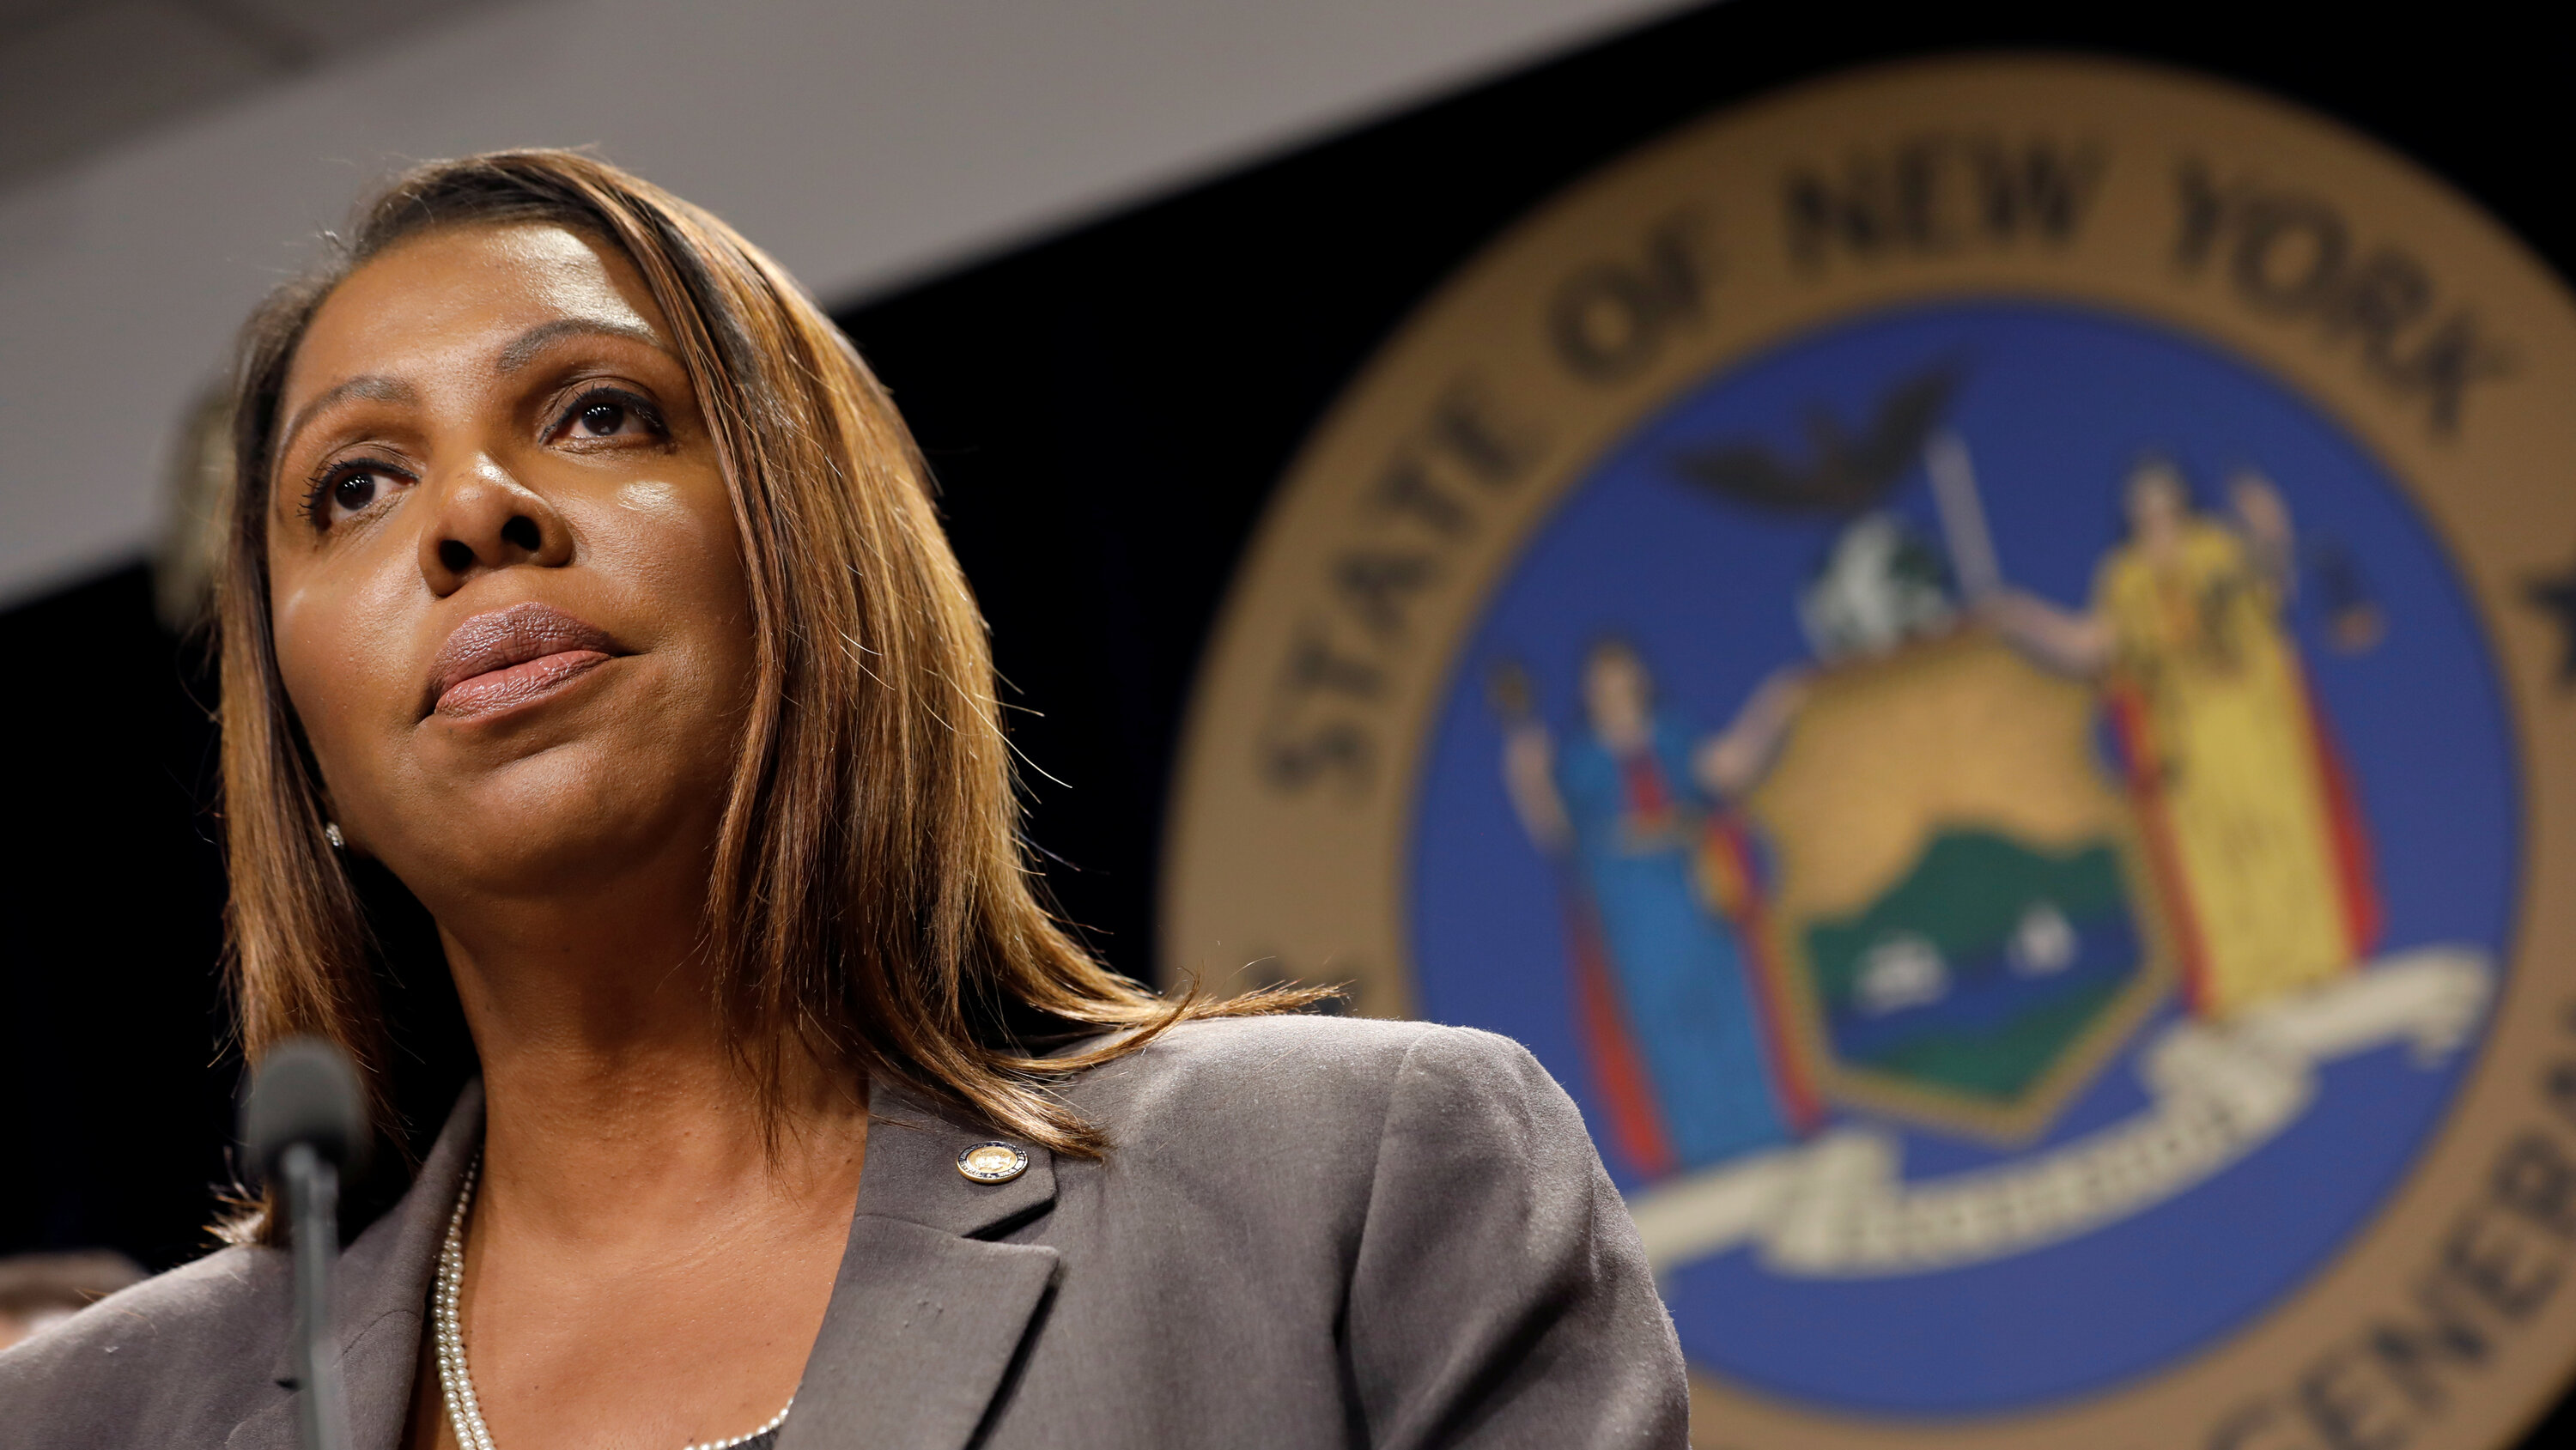 NY AG Letitia James preparing 'long list' of Trump initiatives to undo